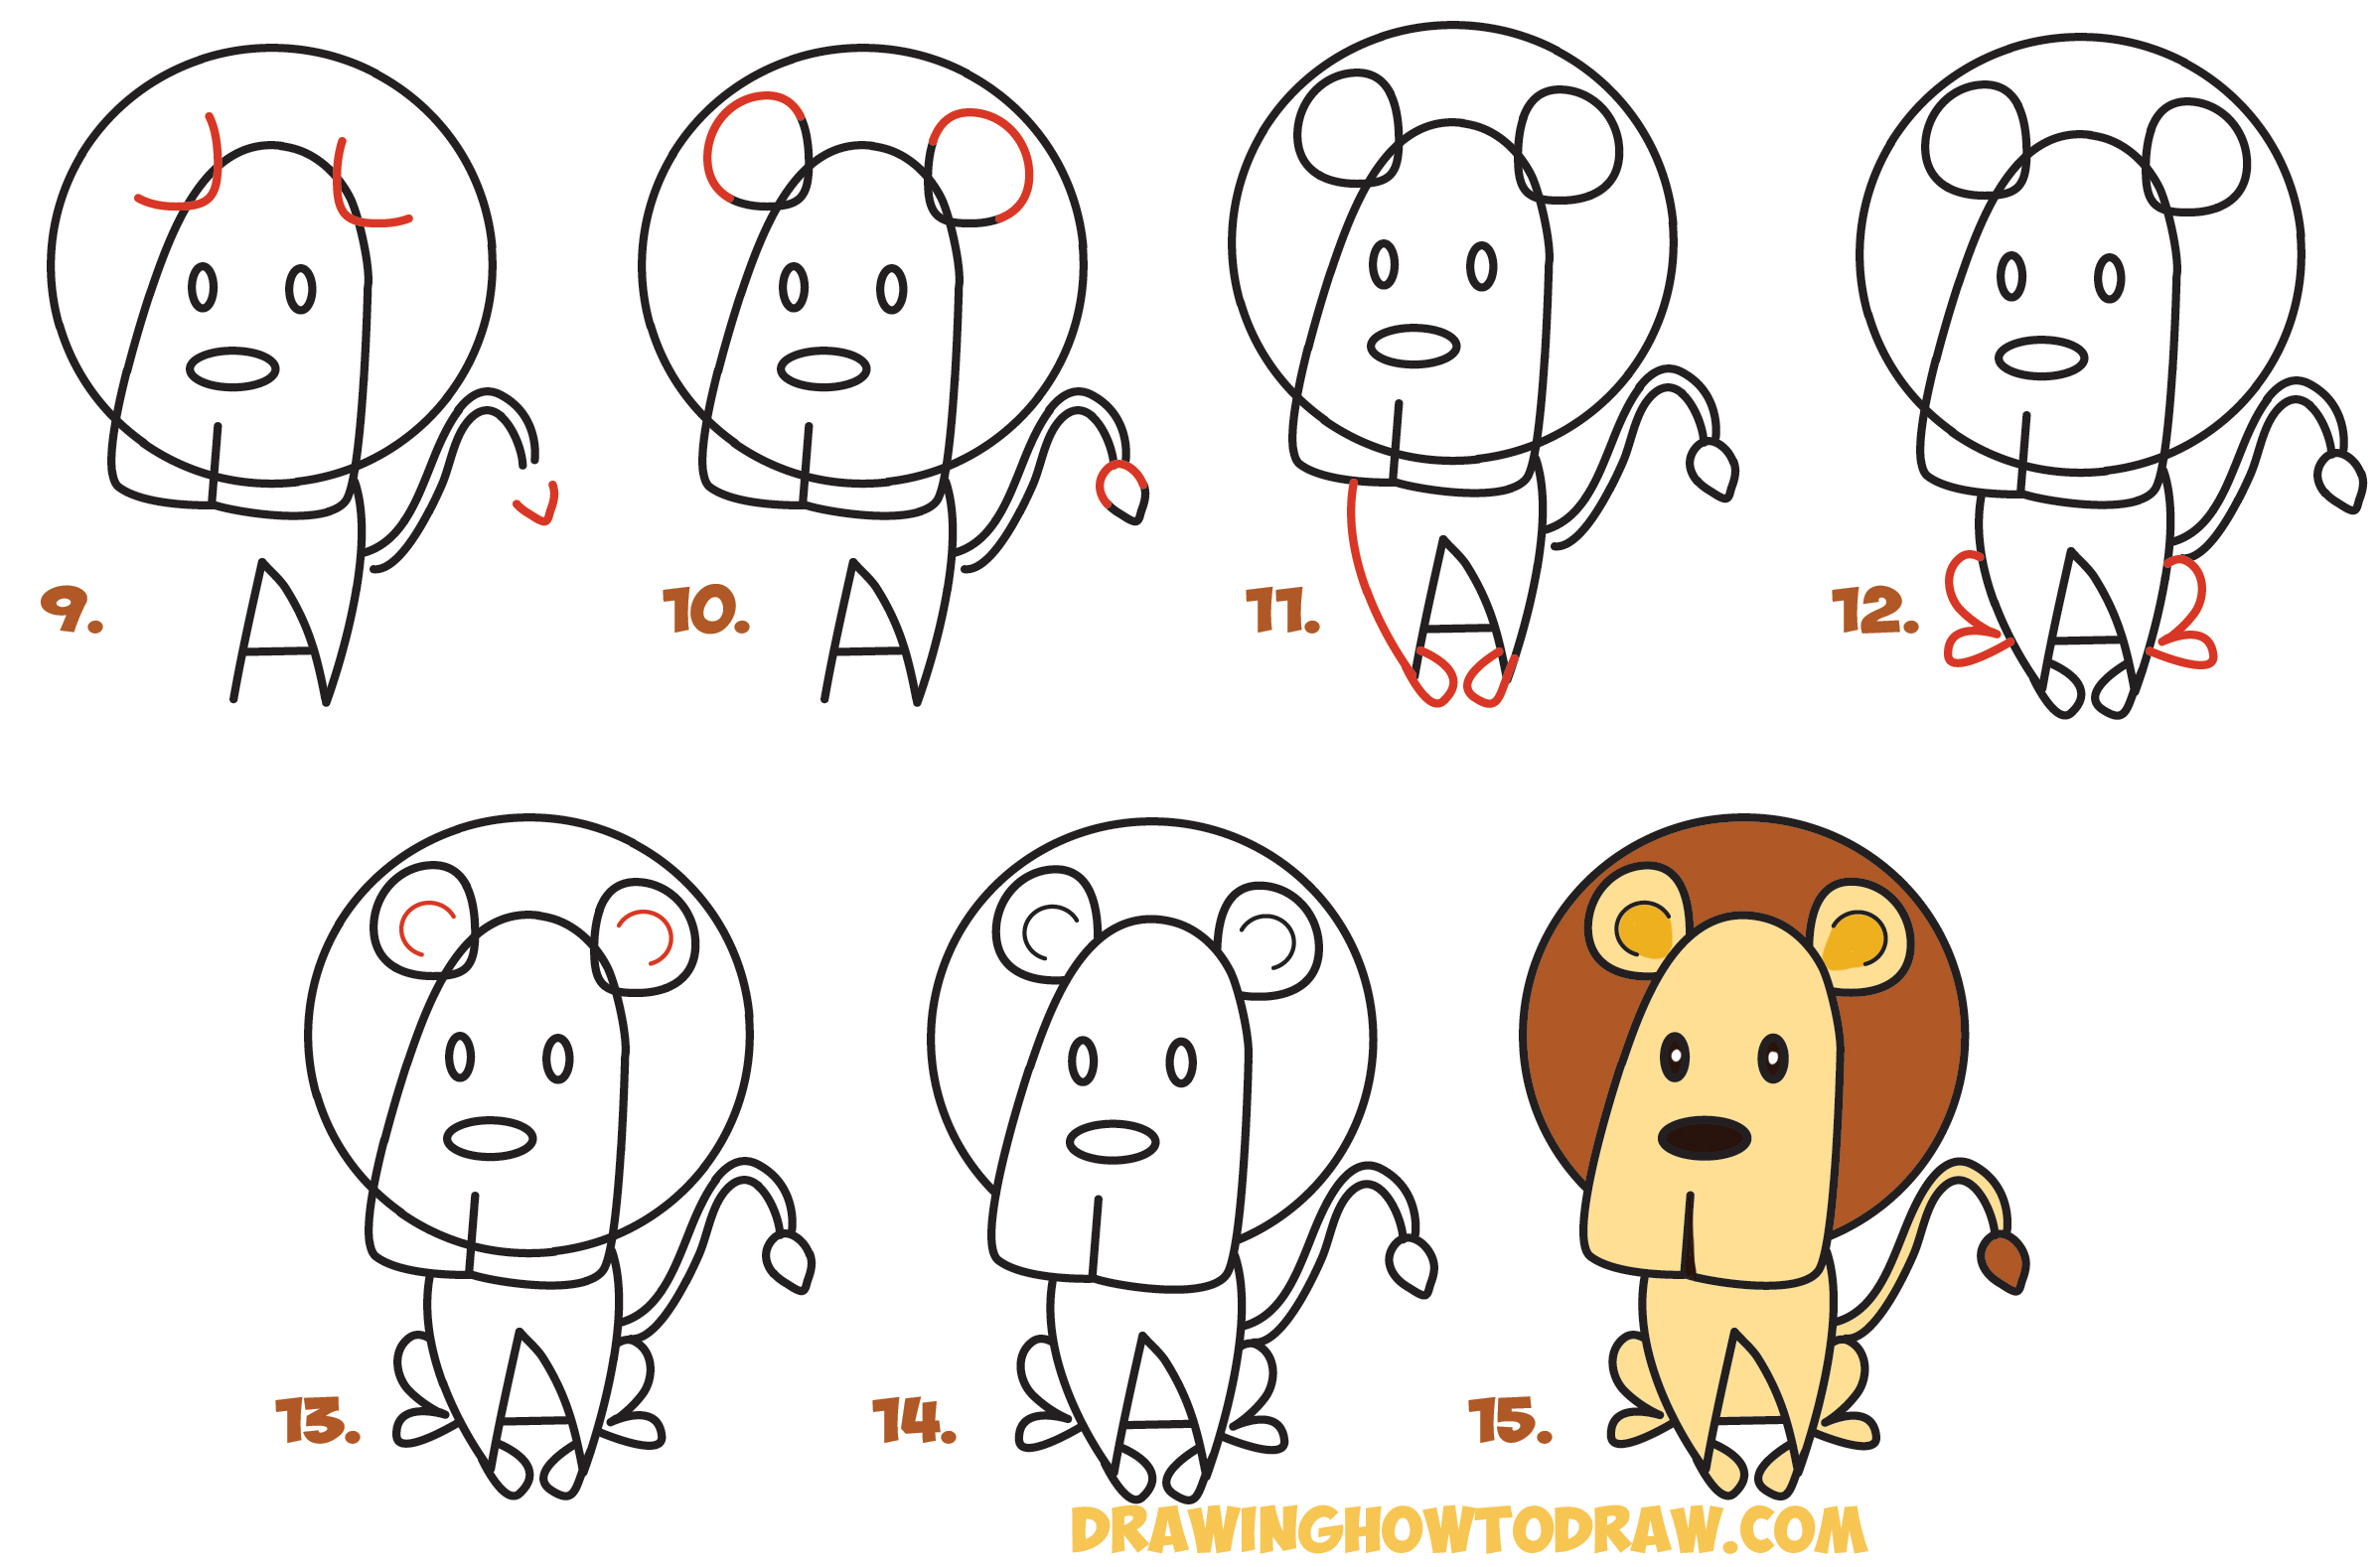 Uncategorized Draw Kids how to draw cartoon lion from the word easy step by drawing learn simple steps lesson for kids